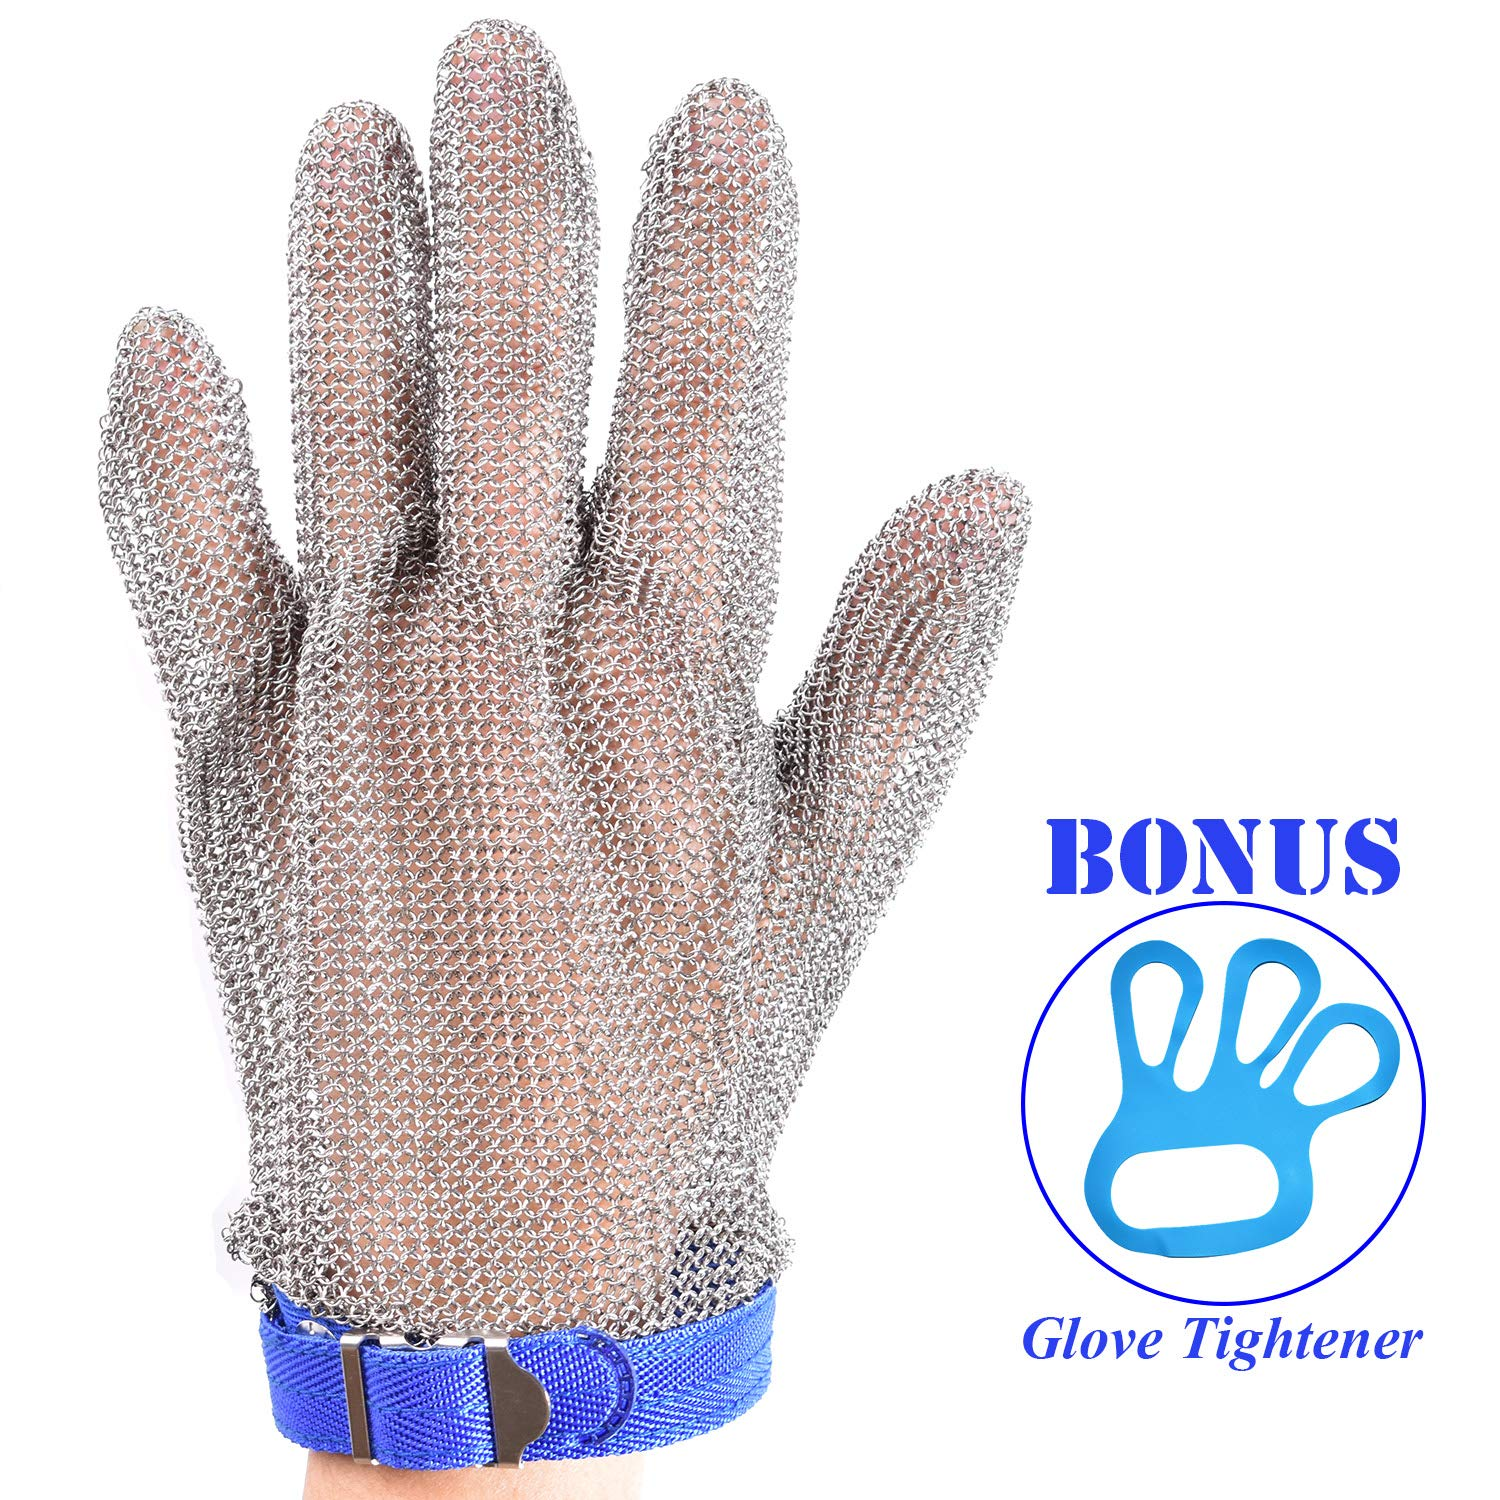 Stainless Steel Mesh Cut-resistant Glove - Chain Mail Glove for Hand Protective, Safety Glove for Home Kitchen, Butcher, Oyster, Garment. Fish Worker (Large) by HANDSAFETY (Image #1)